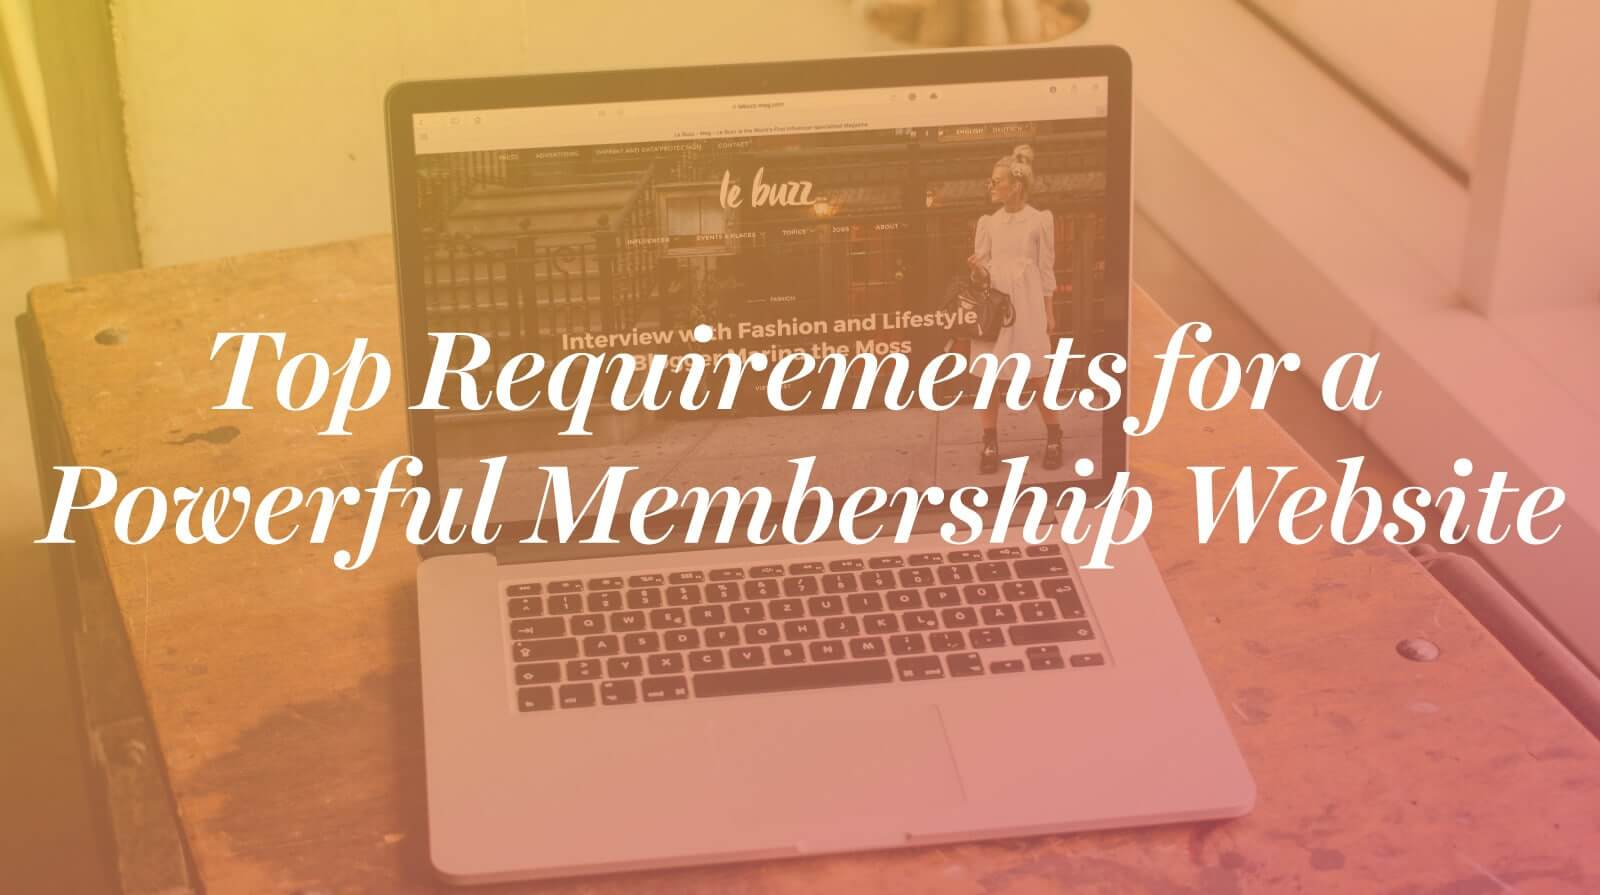 Top Requirements for a Powerful Membership Website